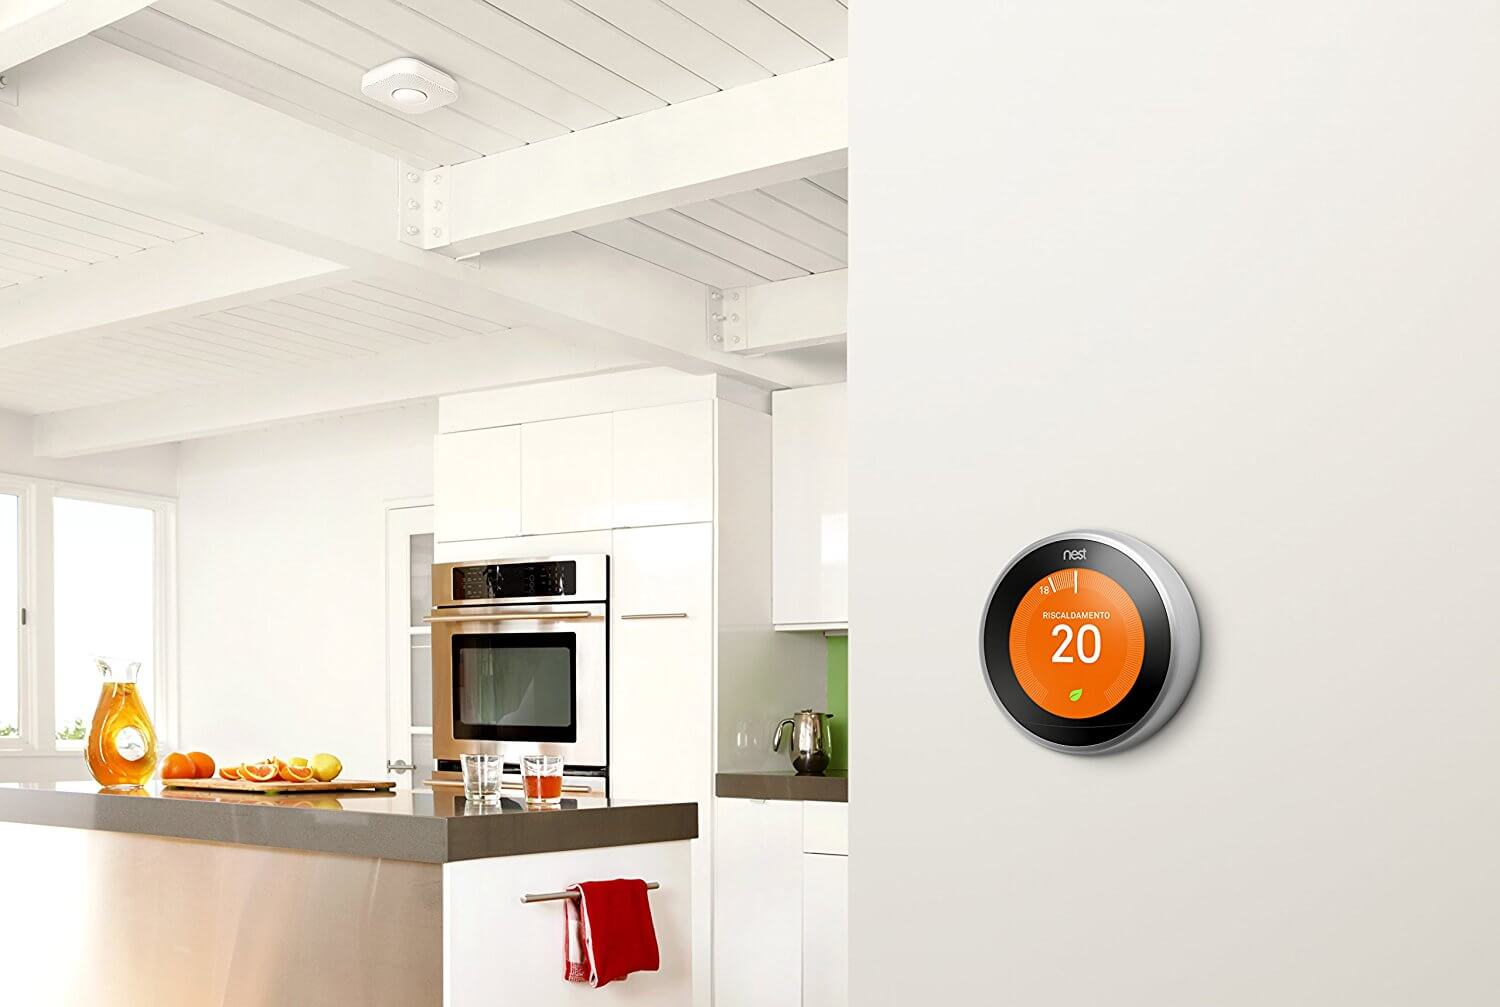 termostati - nest - Smart home: la top 3 dei termostati intelligenti